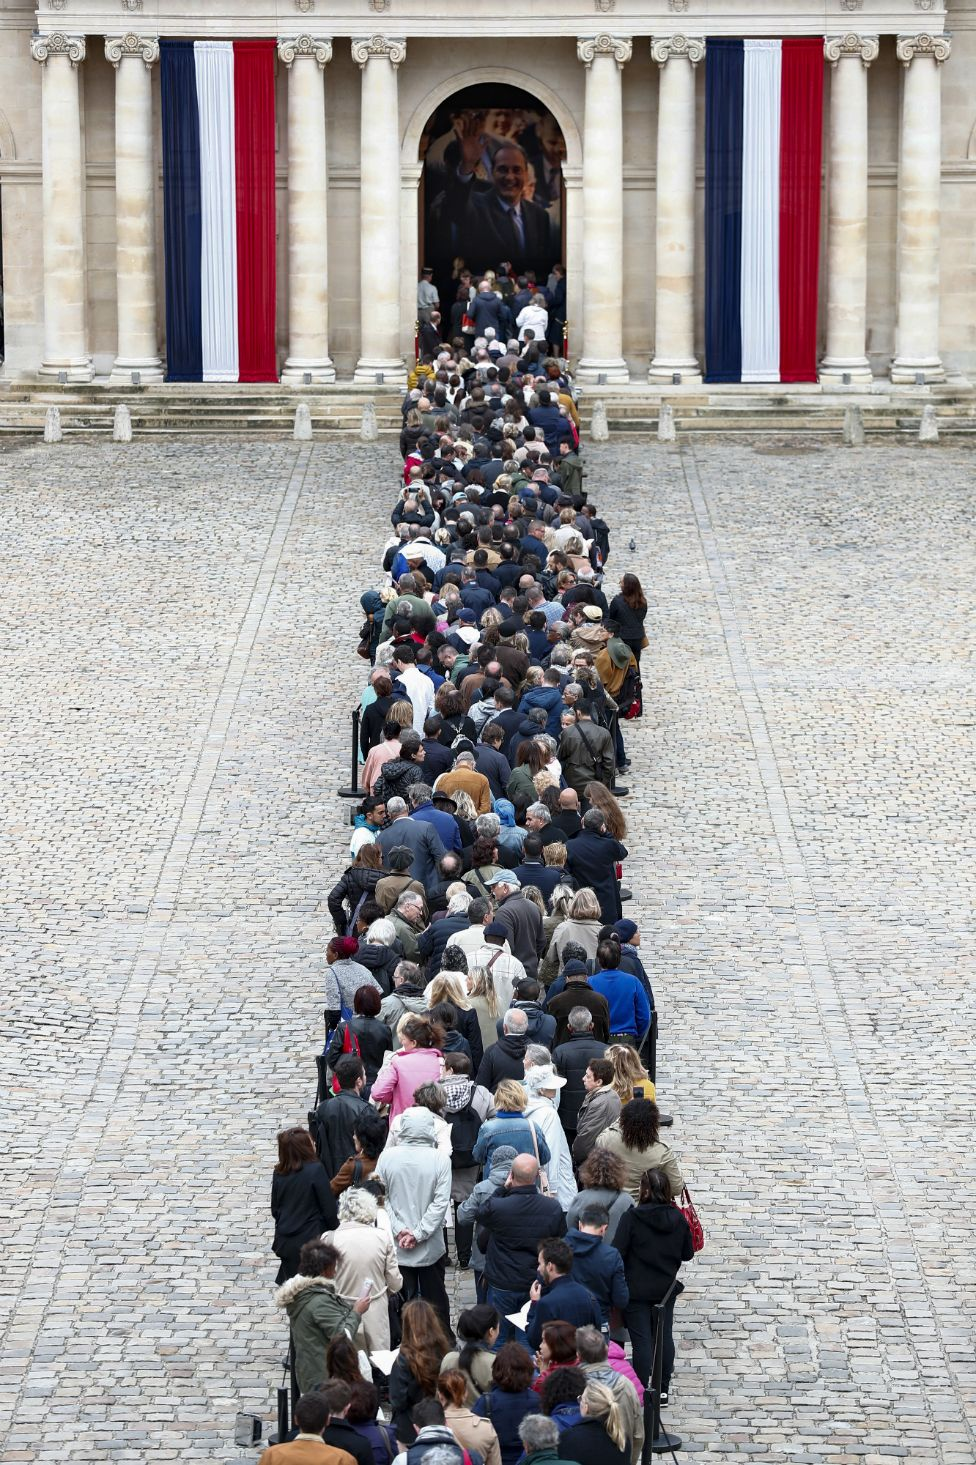 Visitors wait to view the coffin of former French President Jacques Chirac on 29 September 2019.